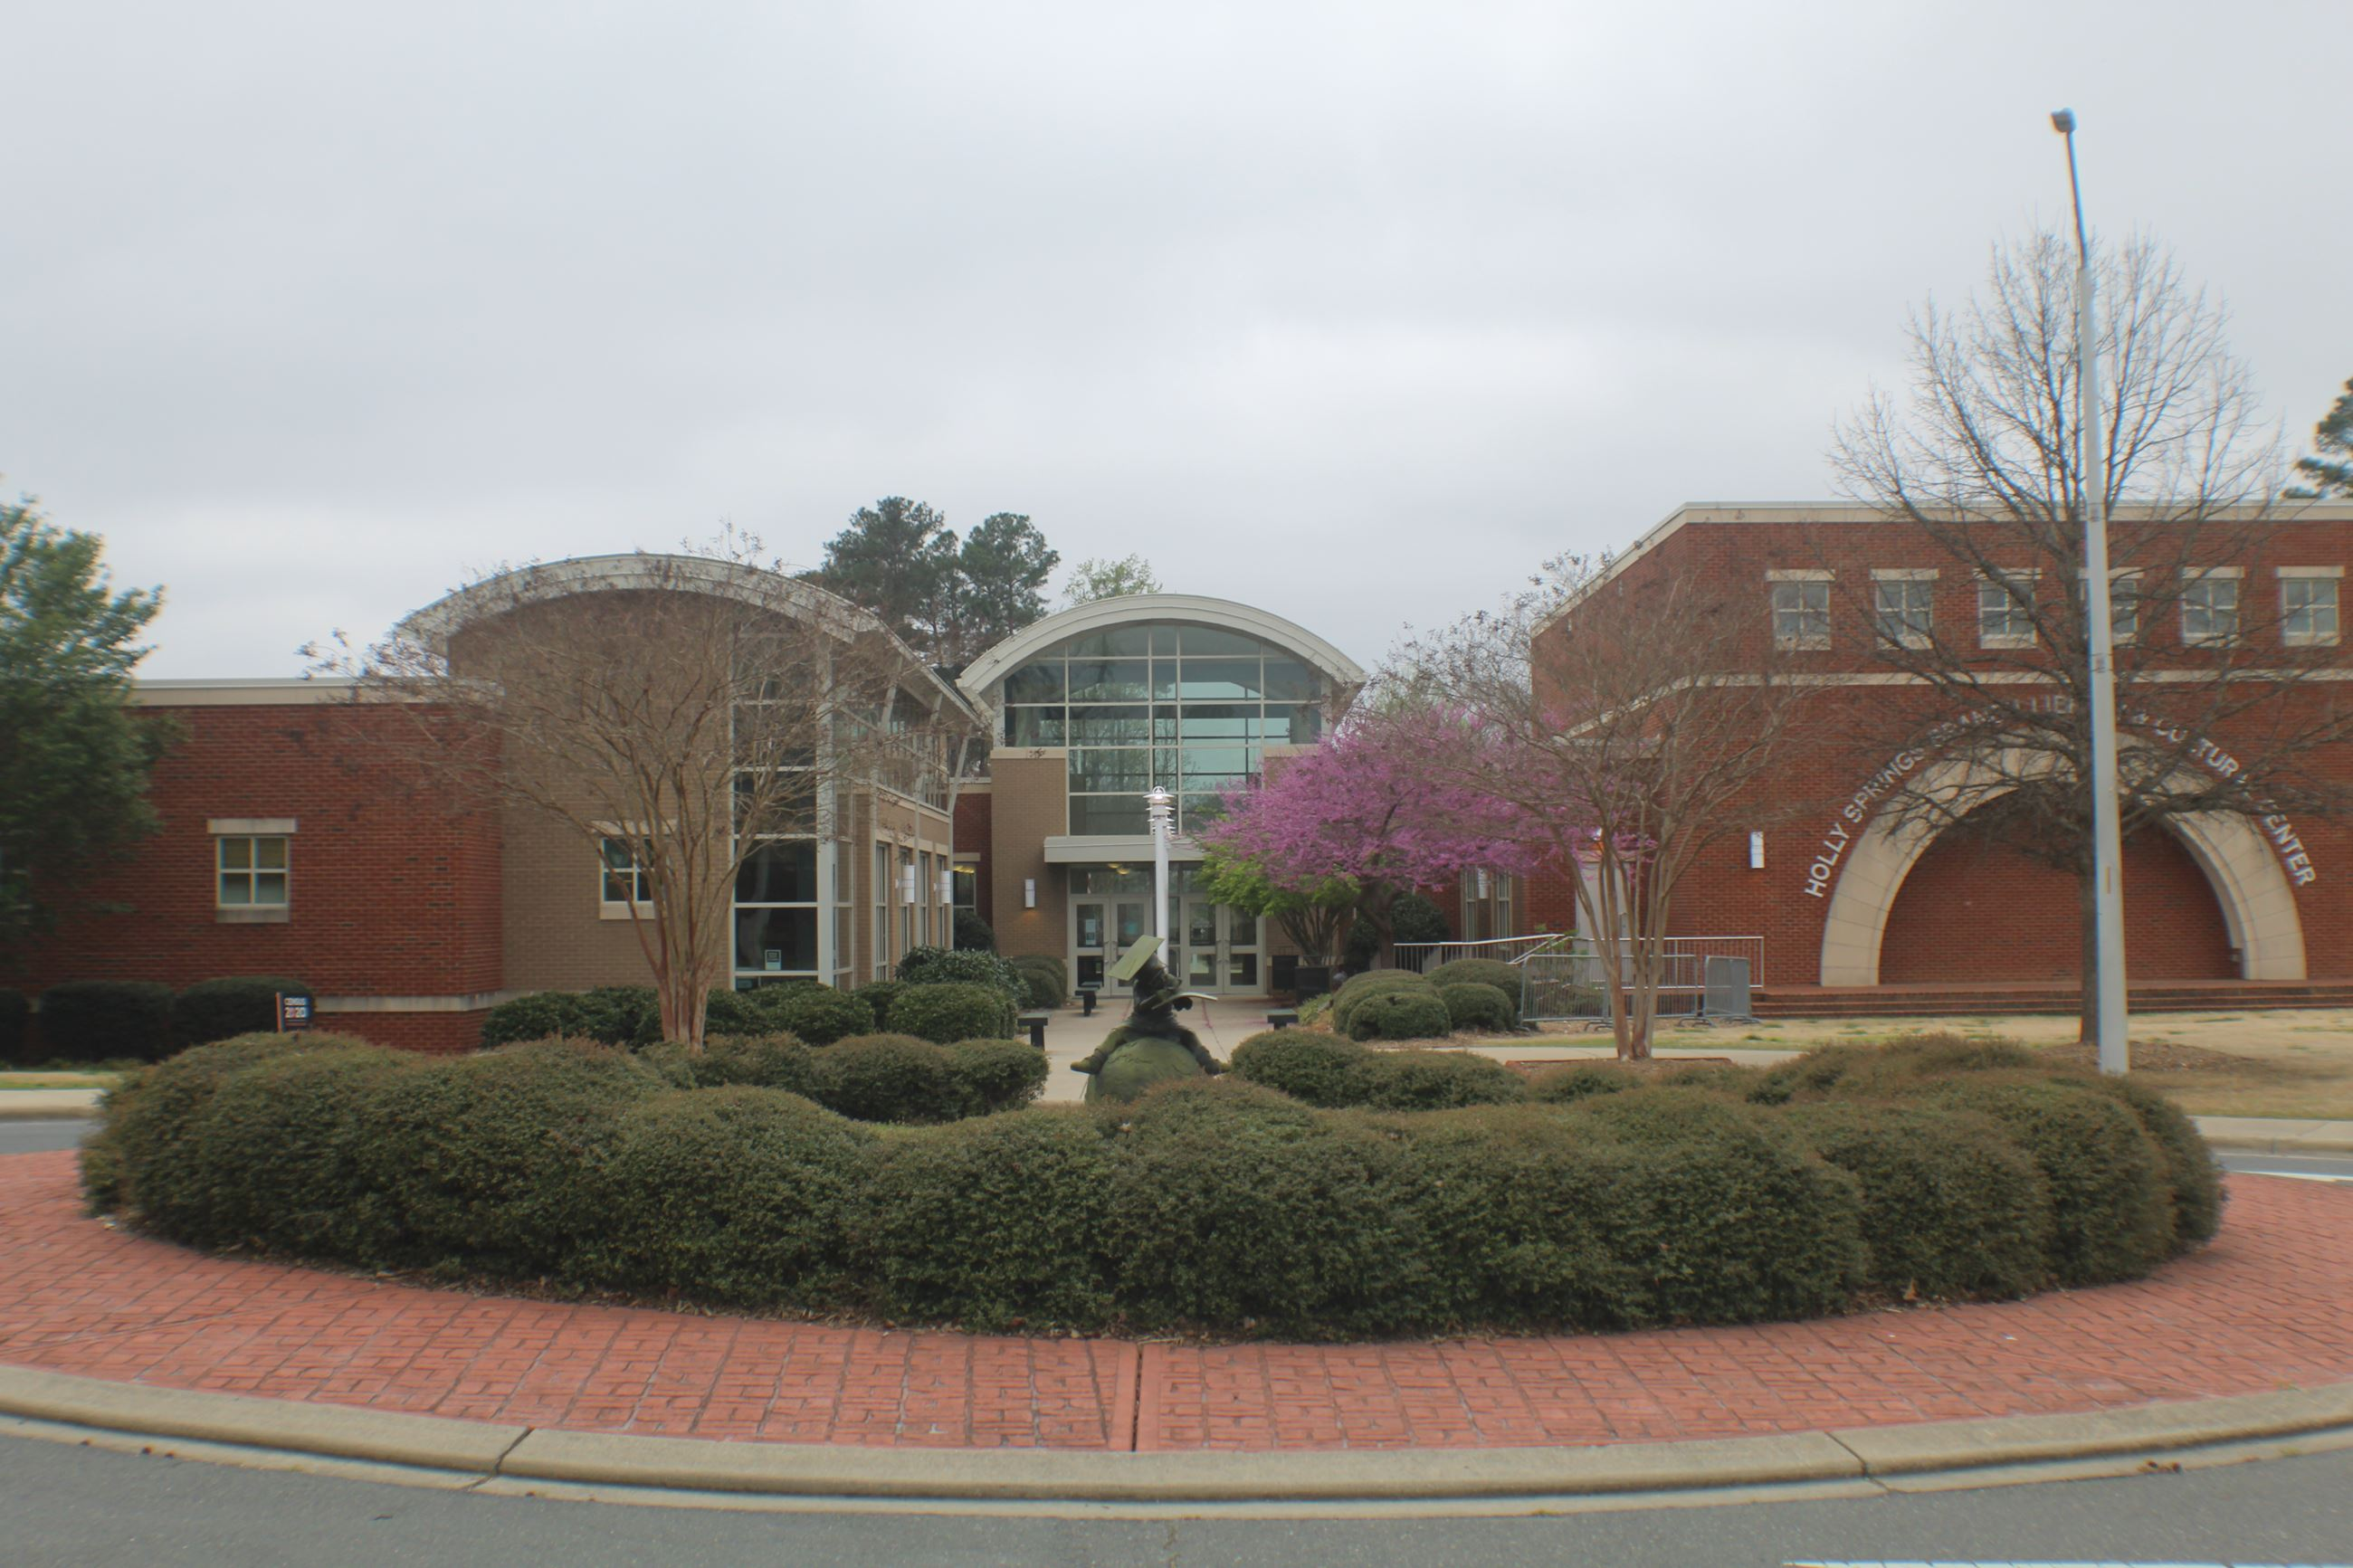 Rear entrance of the Holly Springs Cultural Center